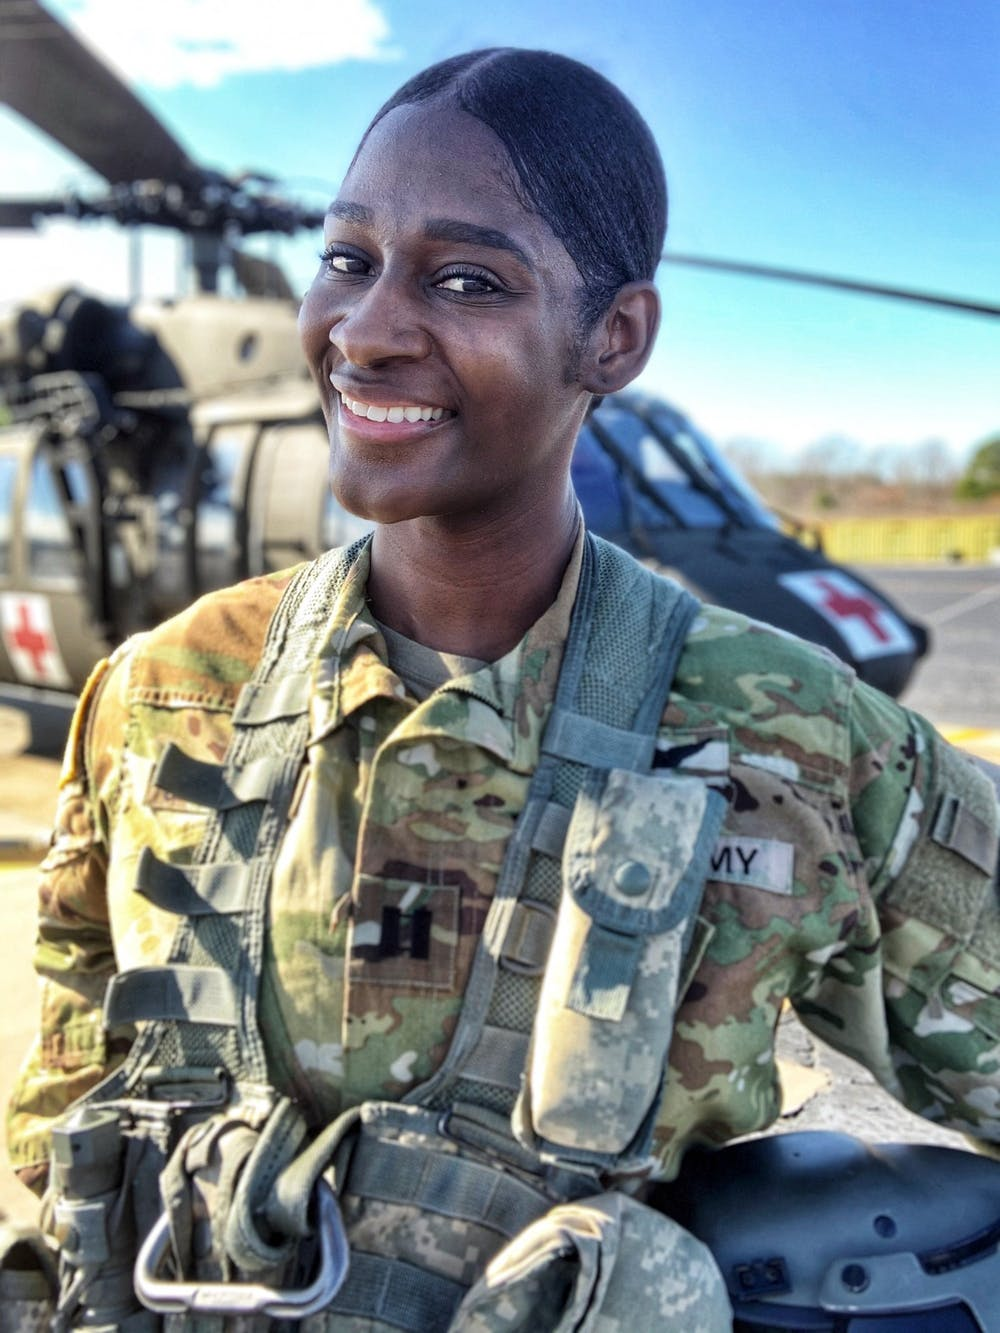 UNC grad becomes first Black female pilot for N.C. National Guard